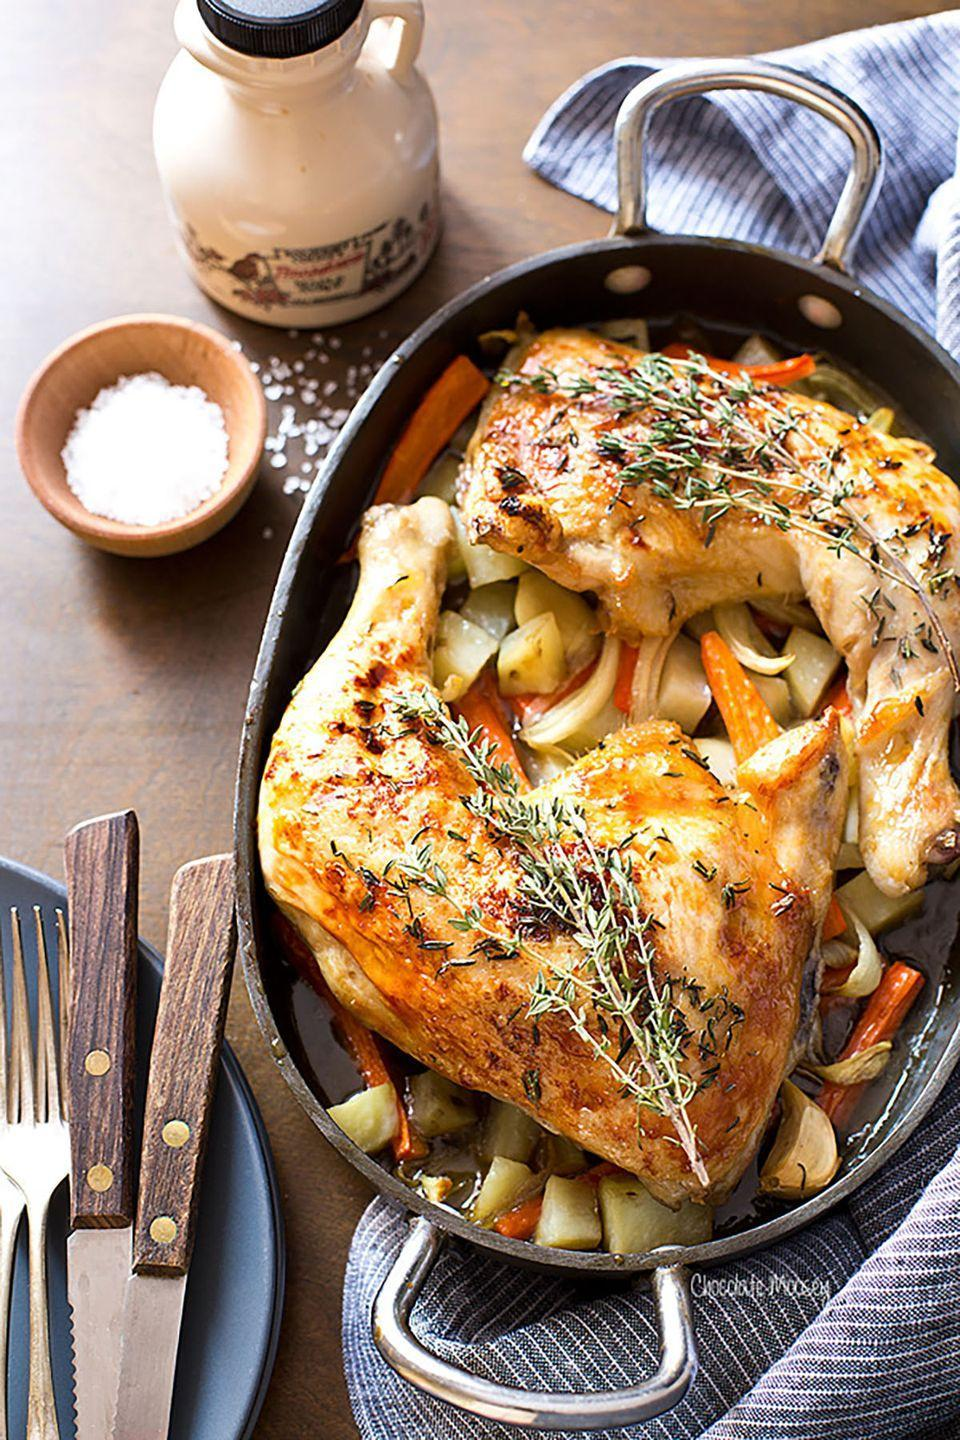 """<p><span class=""""redactor-invisible-space"""">Maple syrup and chicken juice soak into the roasted vegetables below, making this dish a truly unique flavor experience.</span></p><p><strong>Get the recipe at <a href=""""http://www.chocolatemoosey.com/2016/02/11/maple-roasted-chicken-quarters-dinner-for-two/"""" rel=""""nofollow noopener"""" target=""""_blank"""" data-ylk=""""slk:Chocolate Moosey"""" class=""""link rapid-noclick-resp"""">Chocolate Moosey</a>. </strong></p>"""